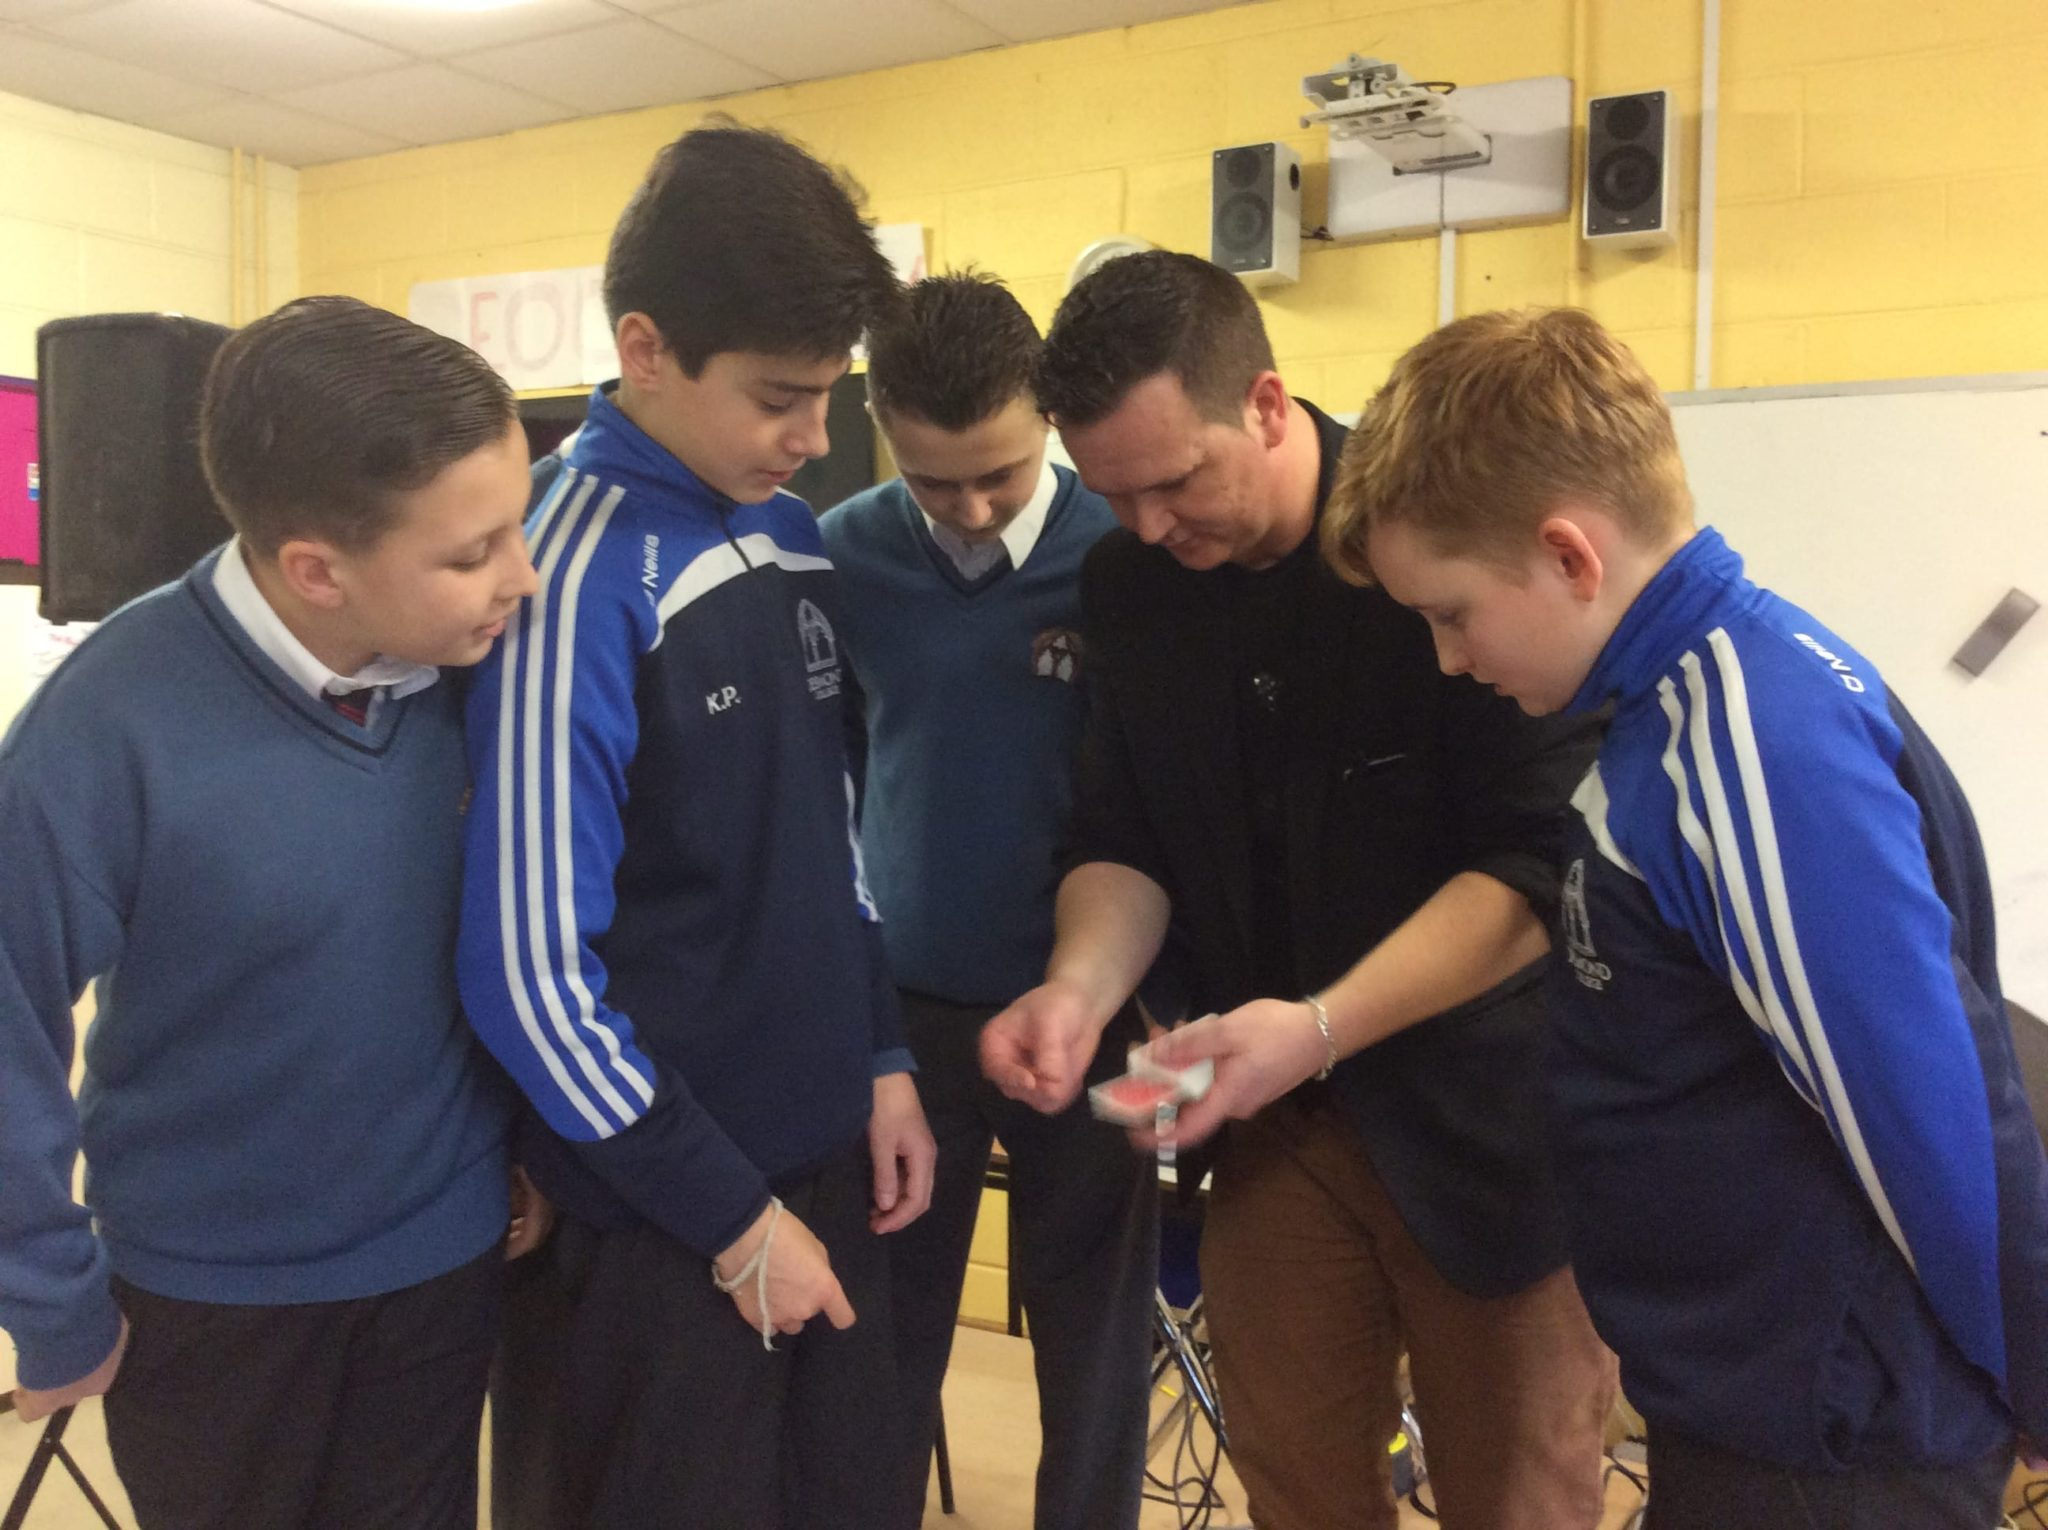 Jan 2016: Mike Nash, Konrad Papierowski, Corey Healy and AJ O Donovan watching intently as Magician Leon show them one of his amazing card tricks during Numeracy week in Desmond College